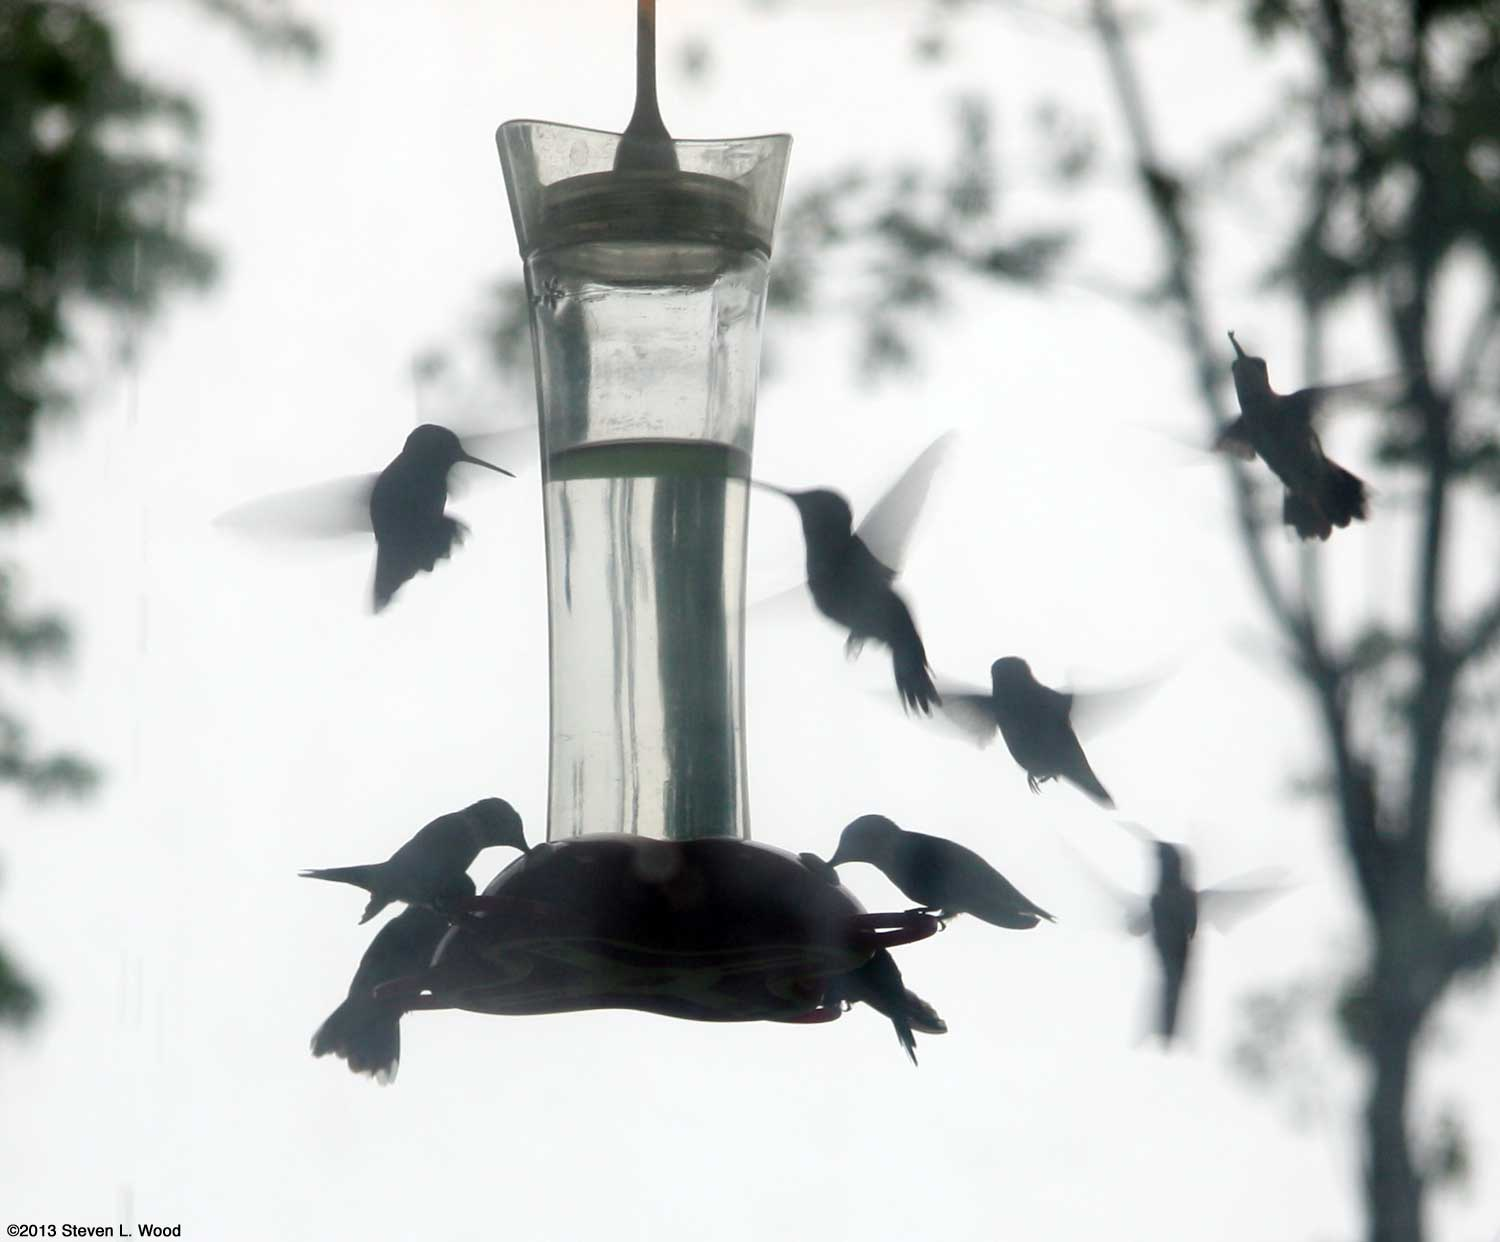 Hummingbirds swarming at feeder